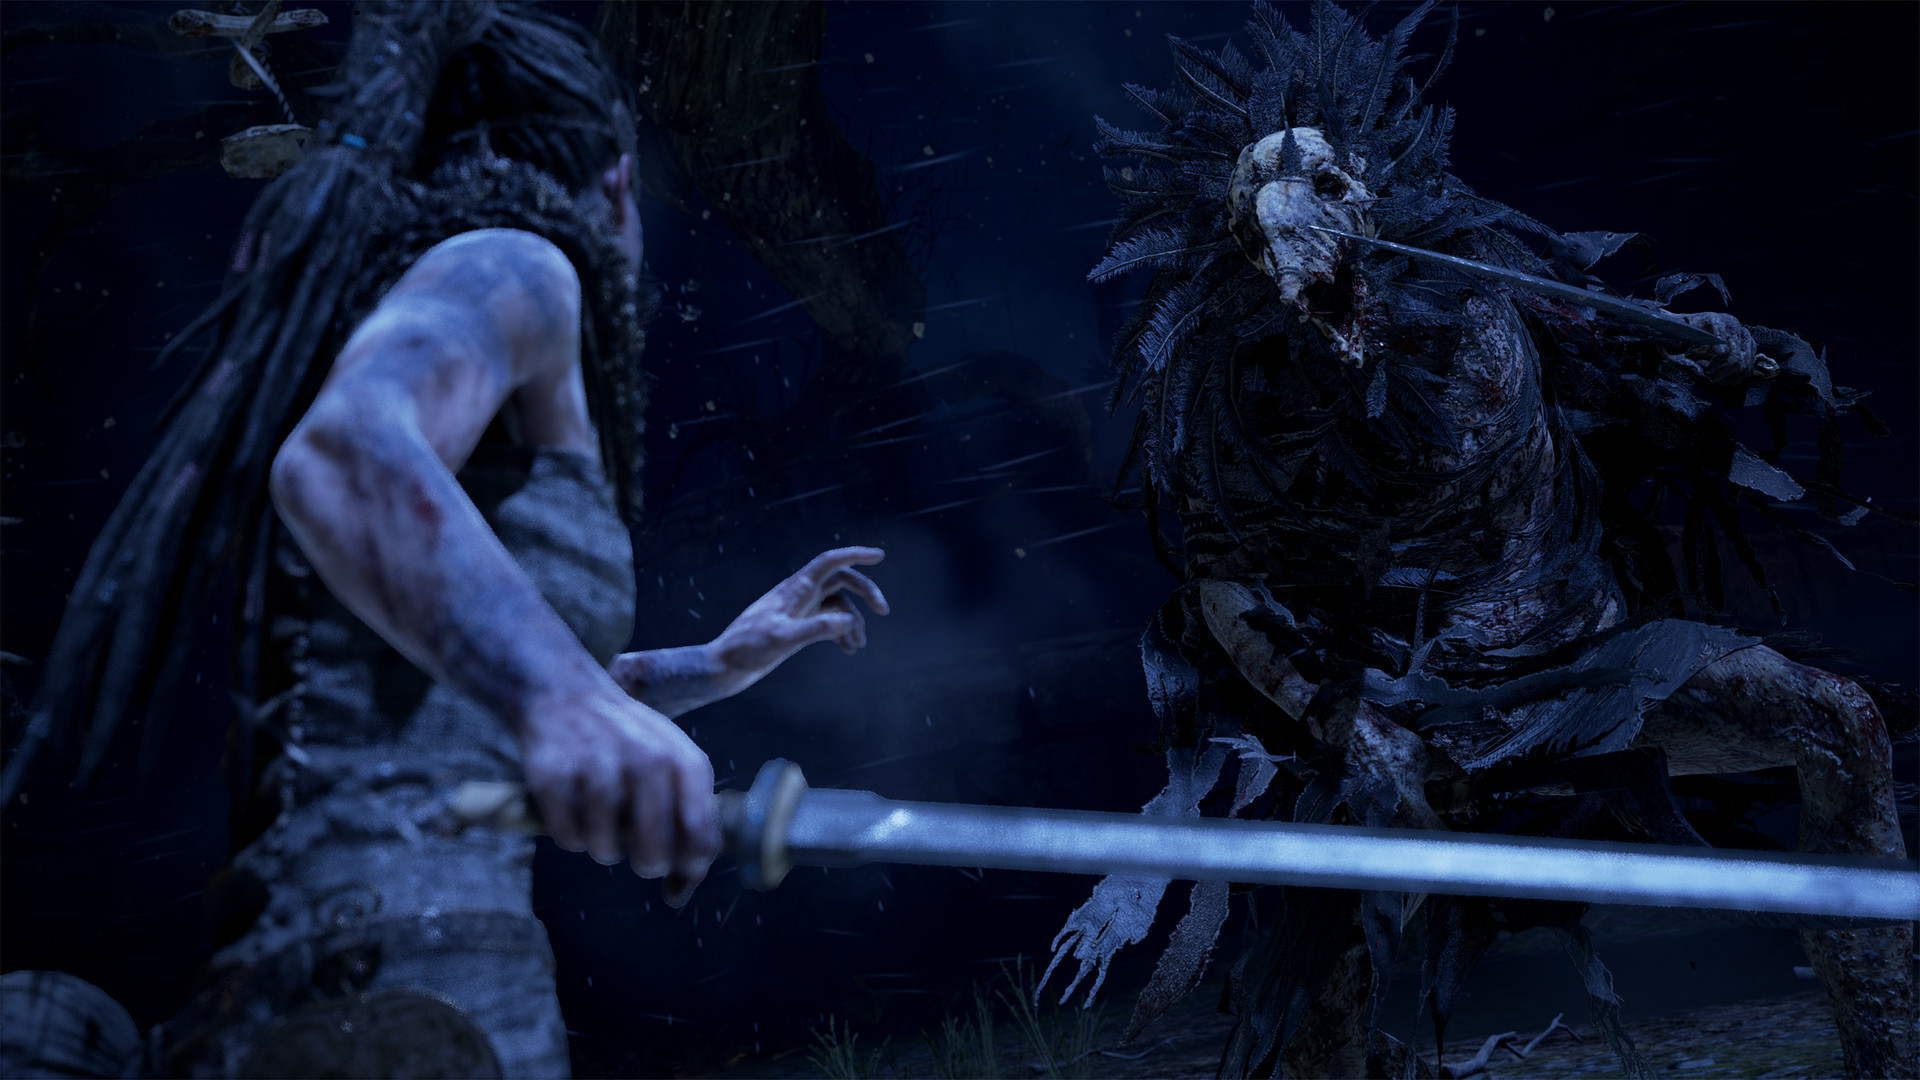 First Look at 'Hellblade: Senua's Sacrifice' VR Edition – Road to VR